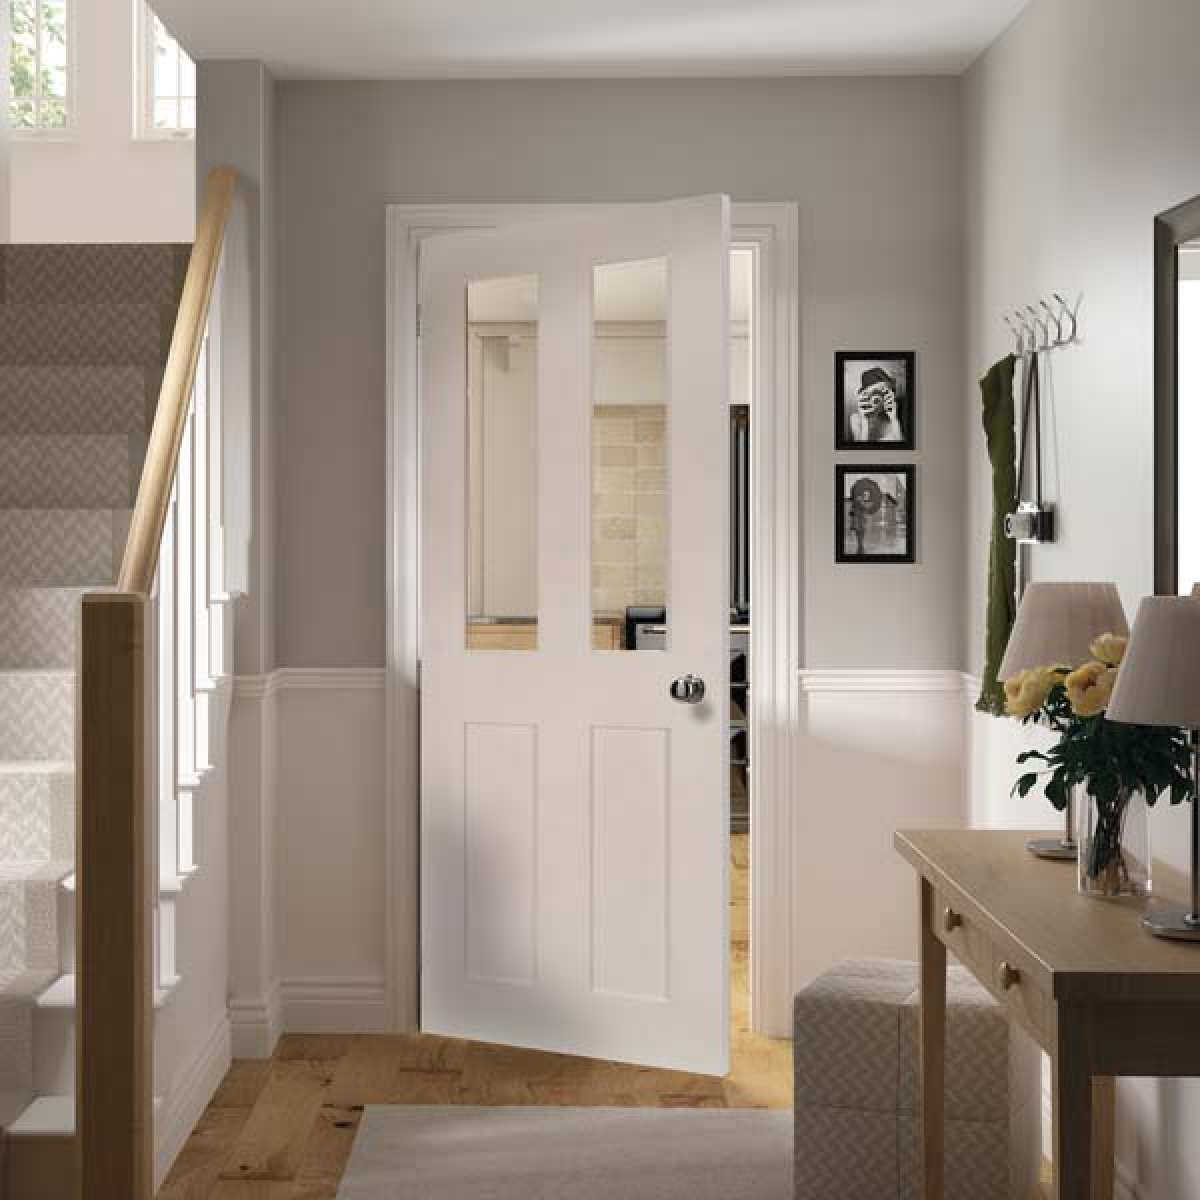 eton white primed glazed lifestyle websters Image by Websters Timber